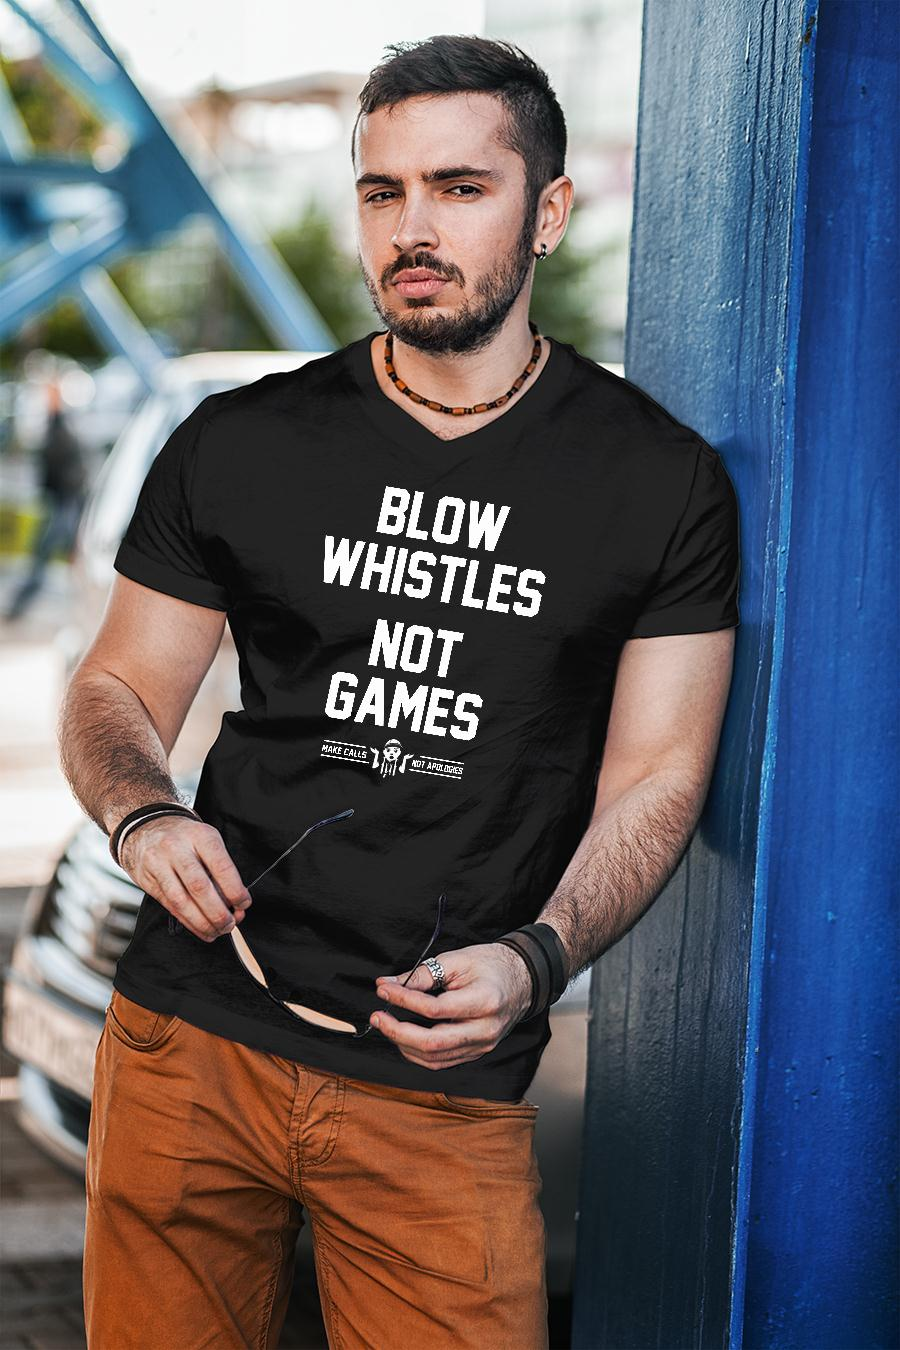 Blow Whistles Not Games Tee Shirt unisex